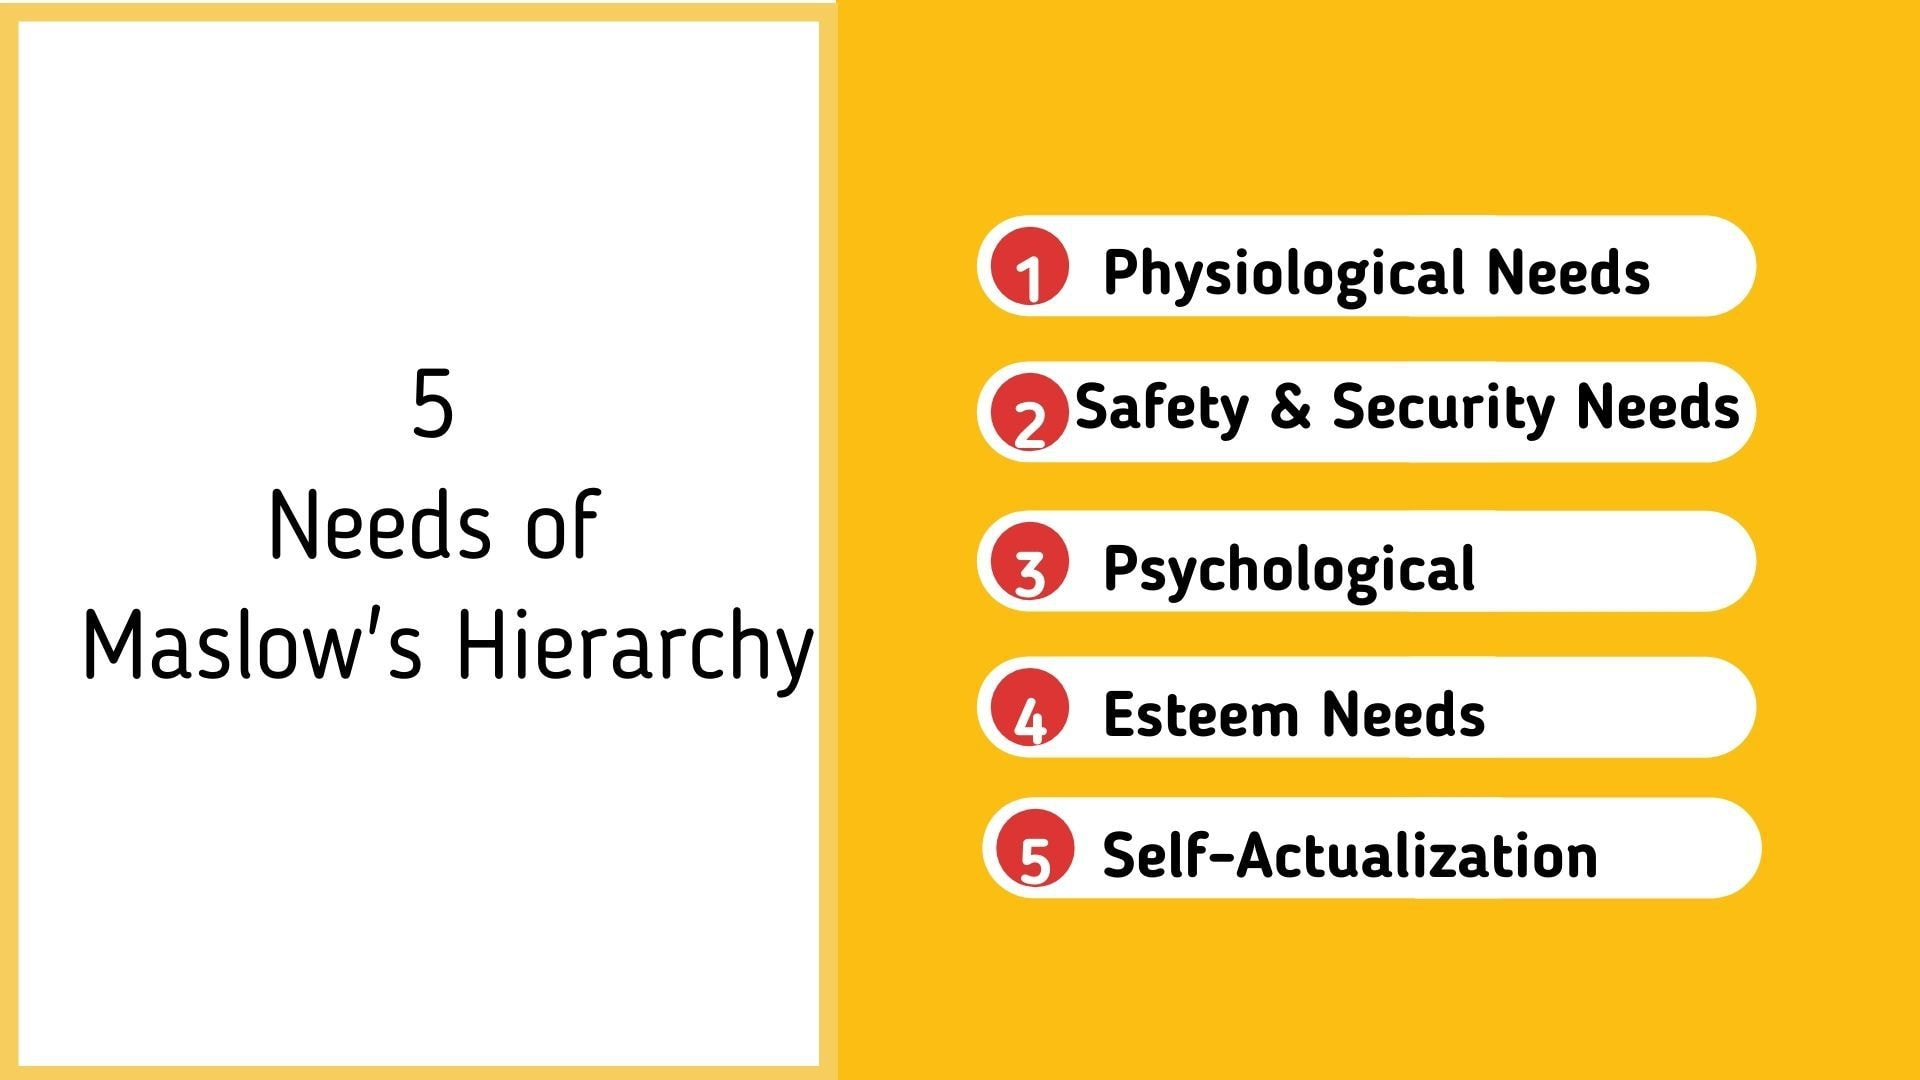 5 Needs of Maslow's Hierarchy